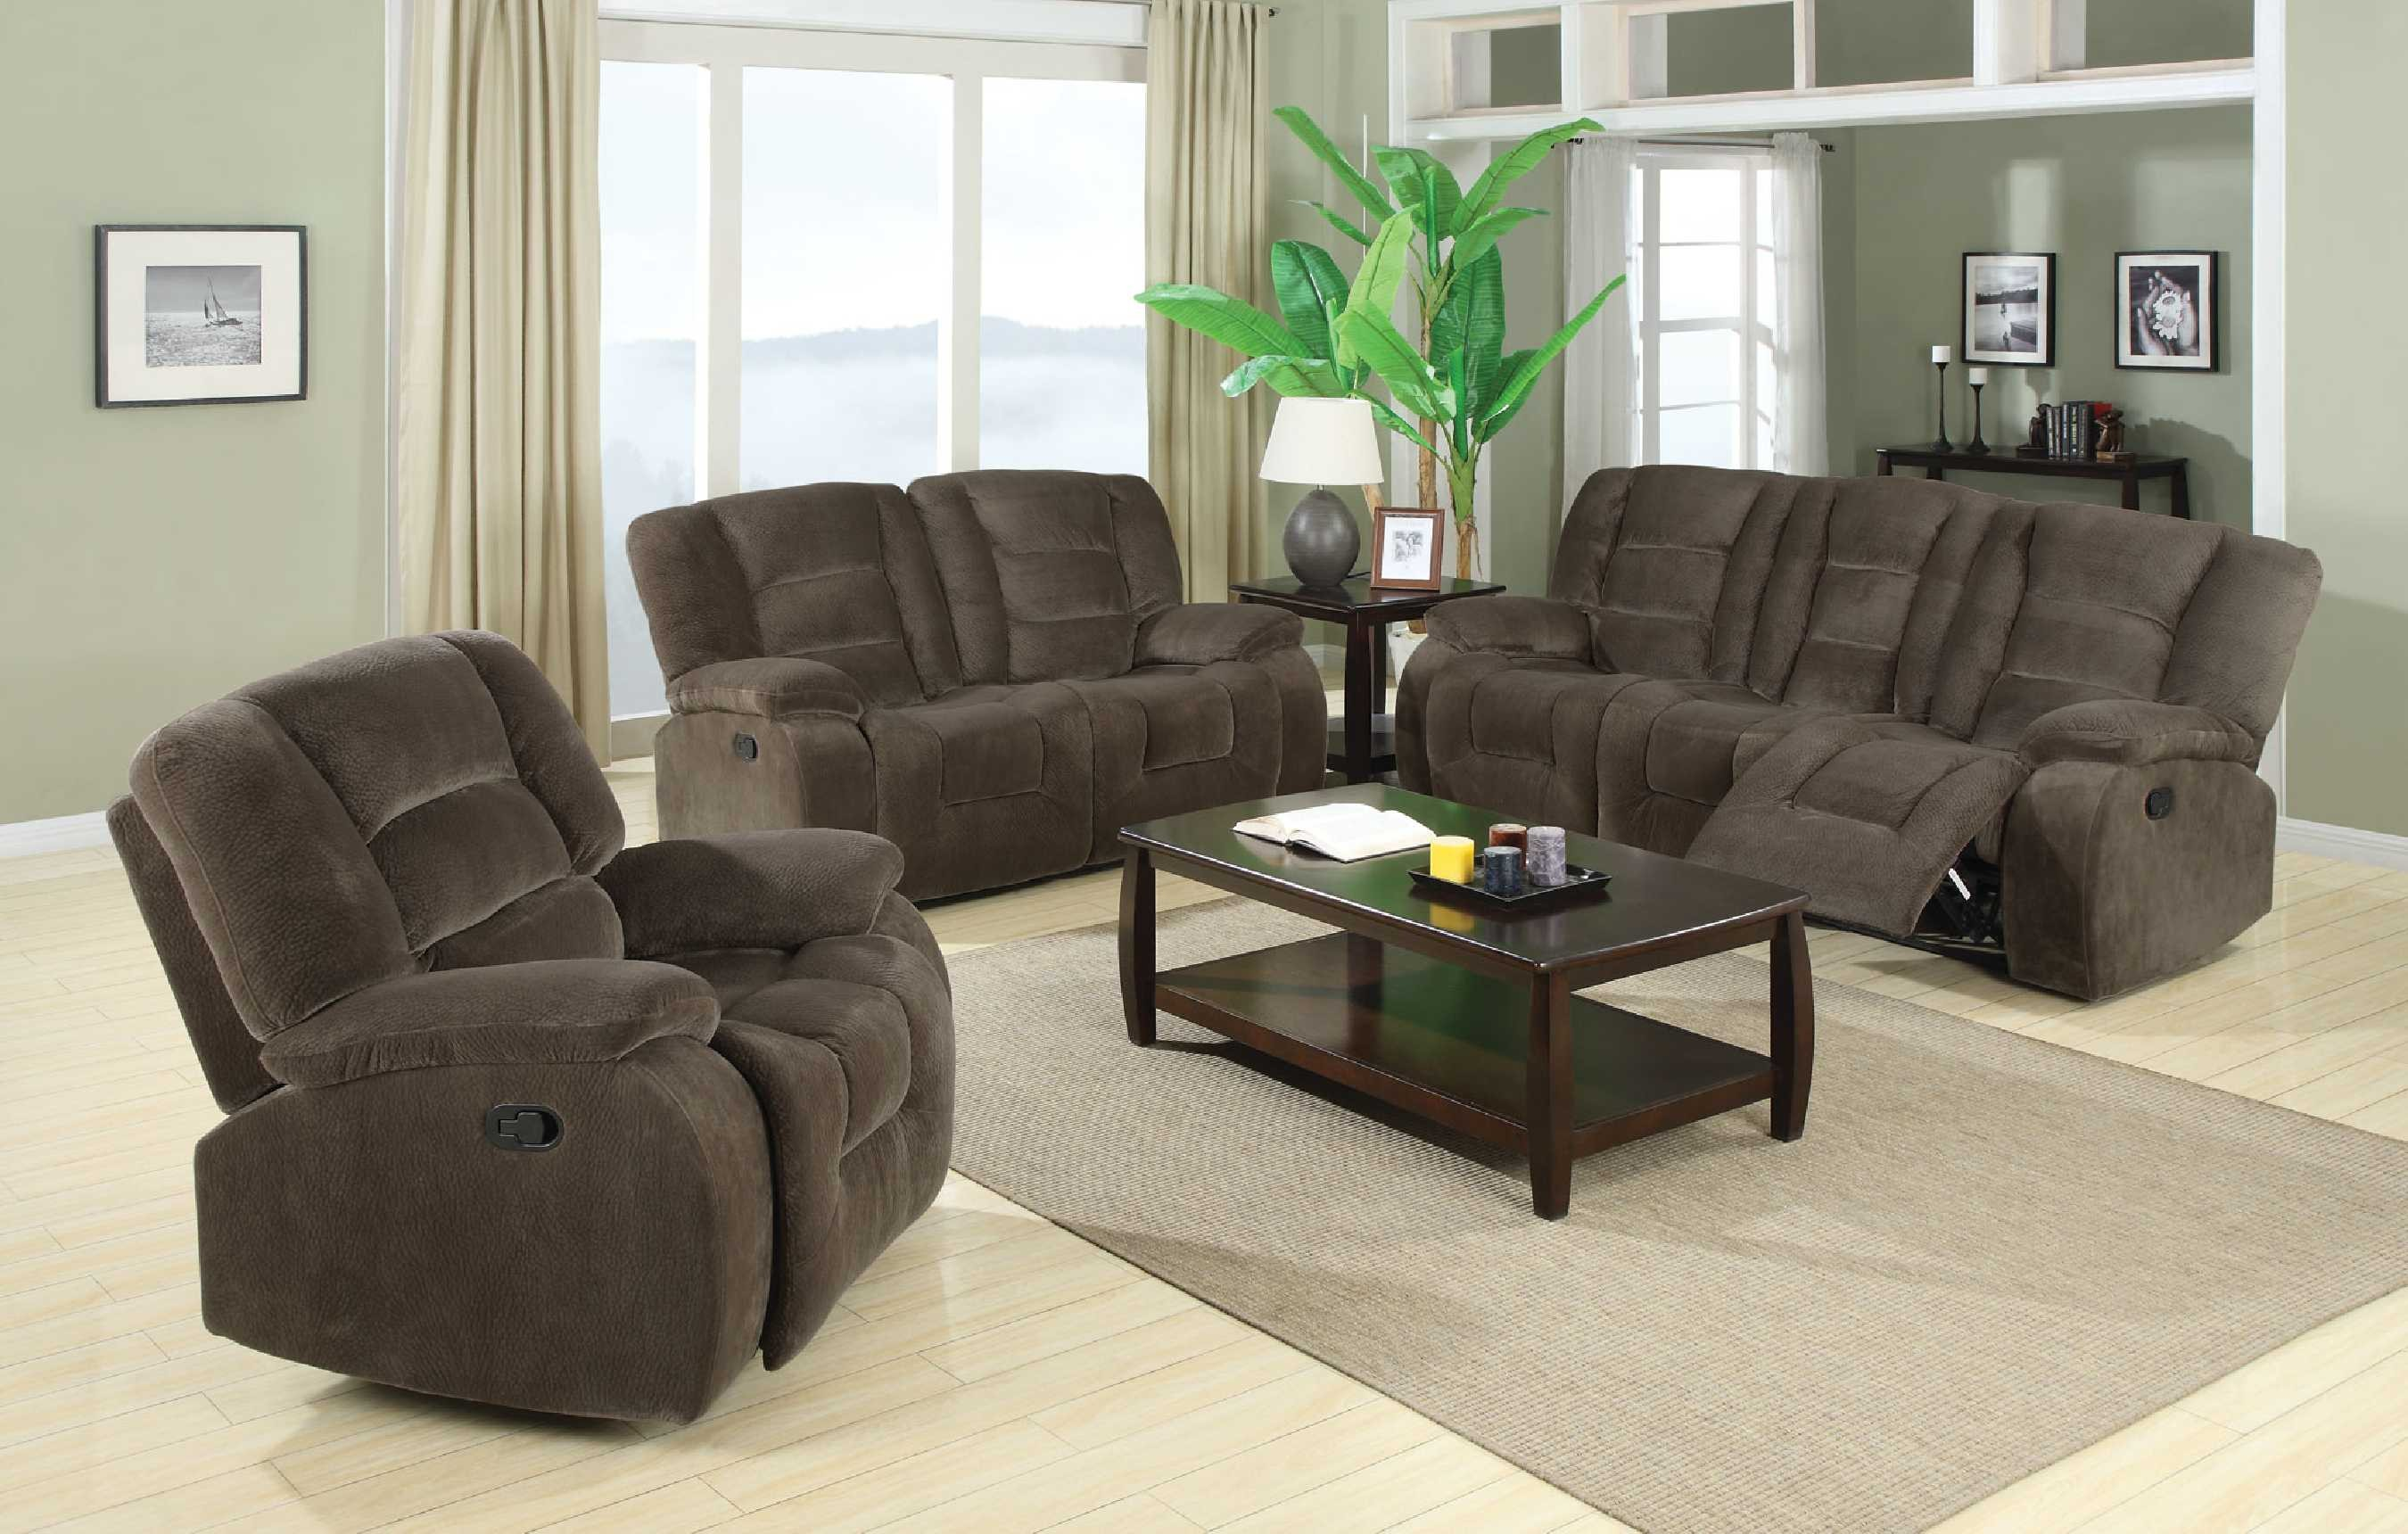 Collection Padded Velvet Reclining Sofa & Loveseat Set